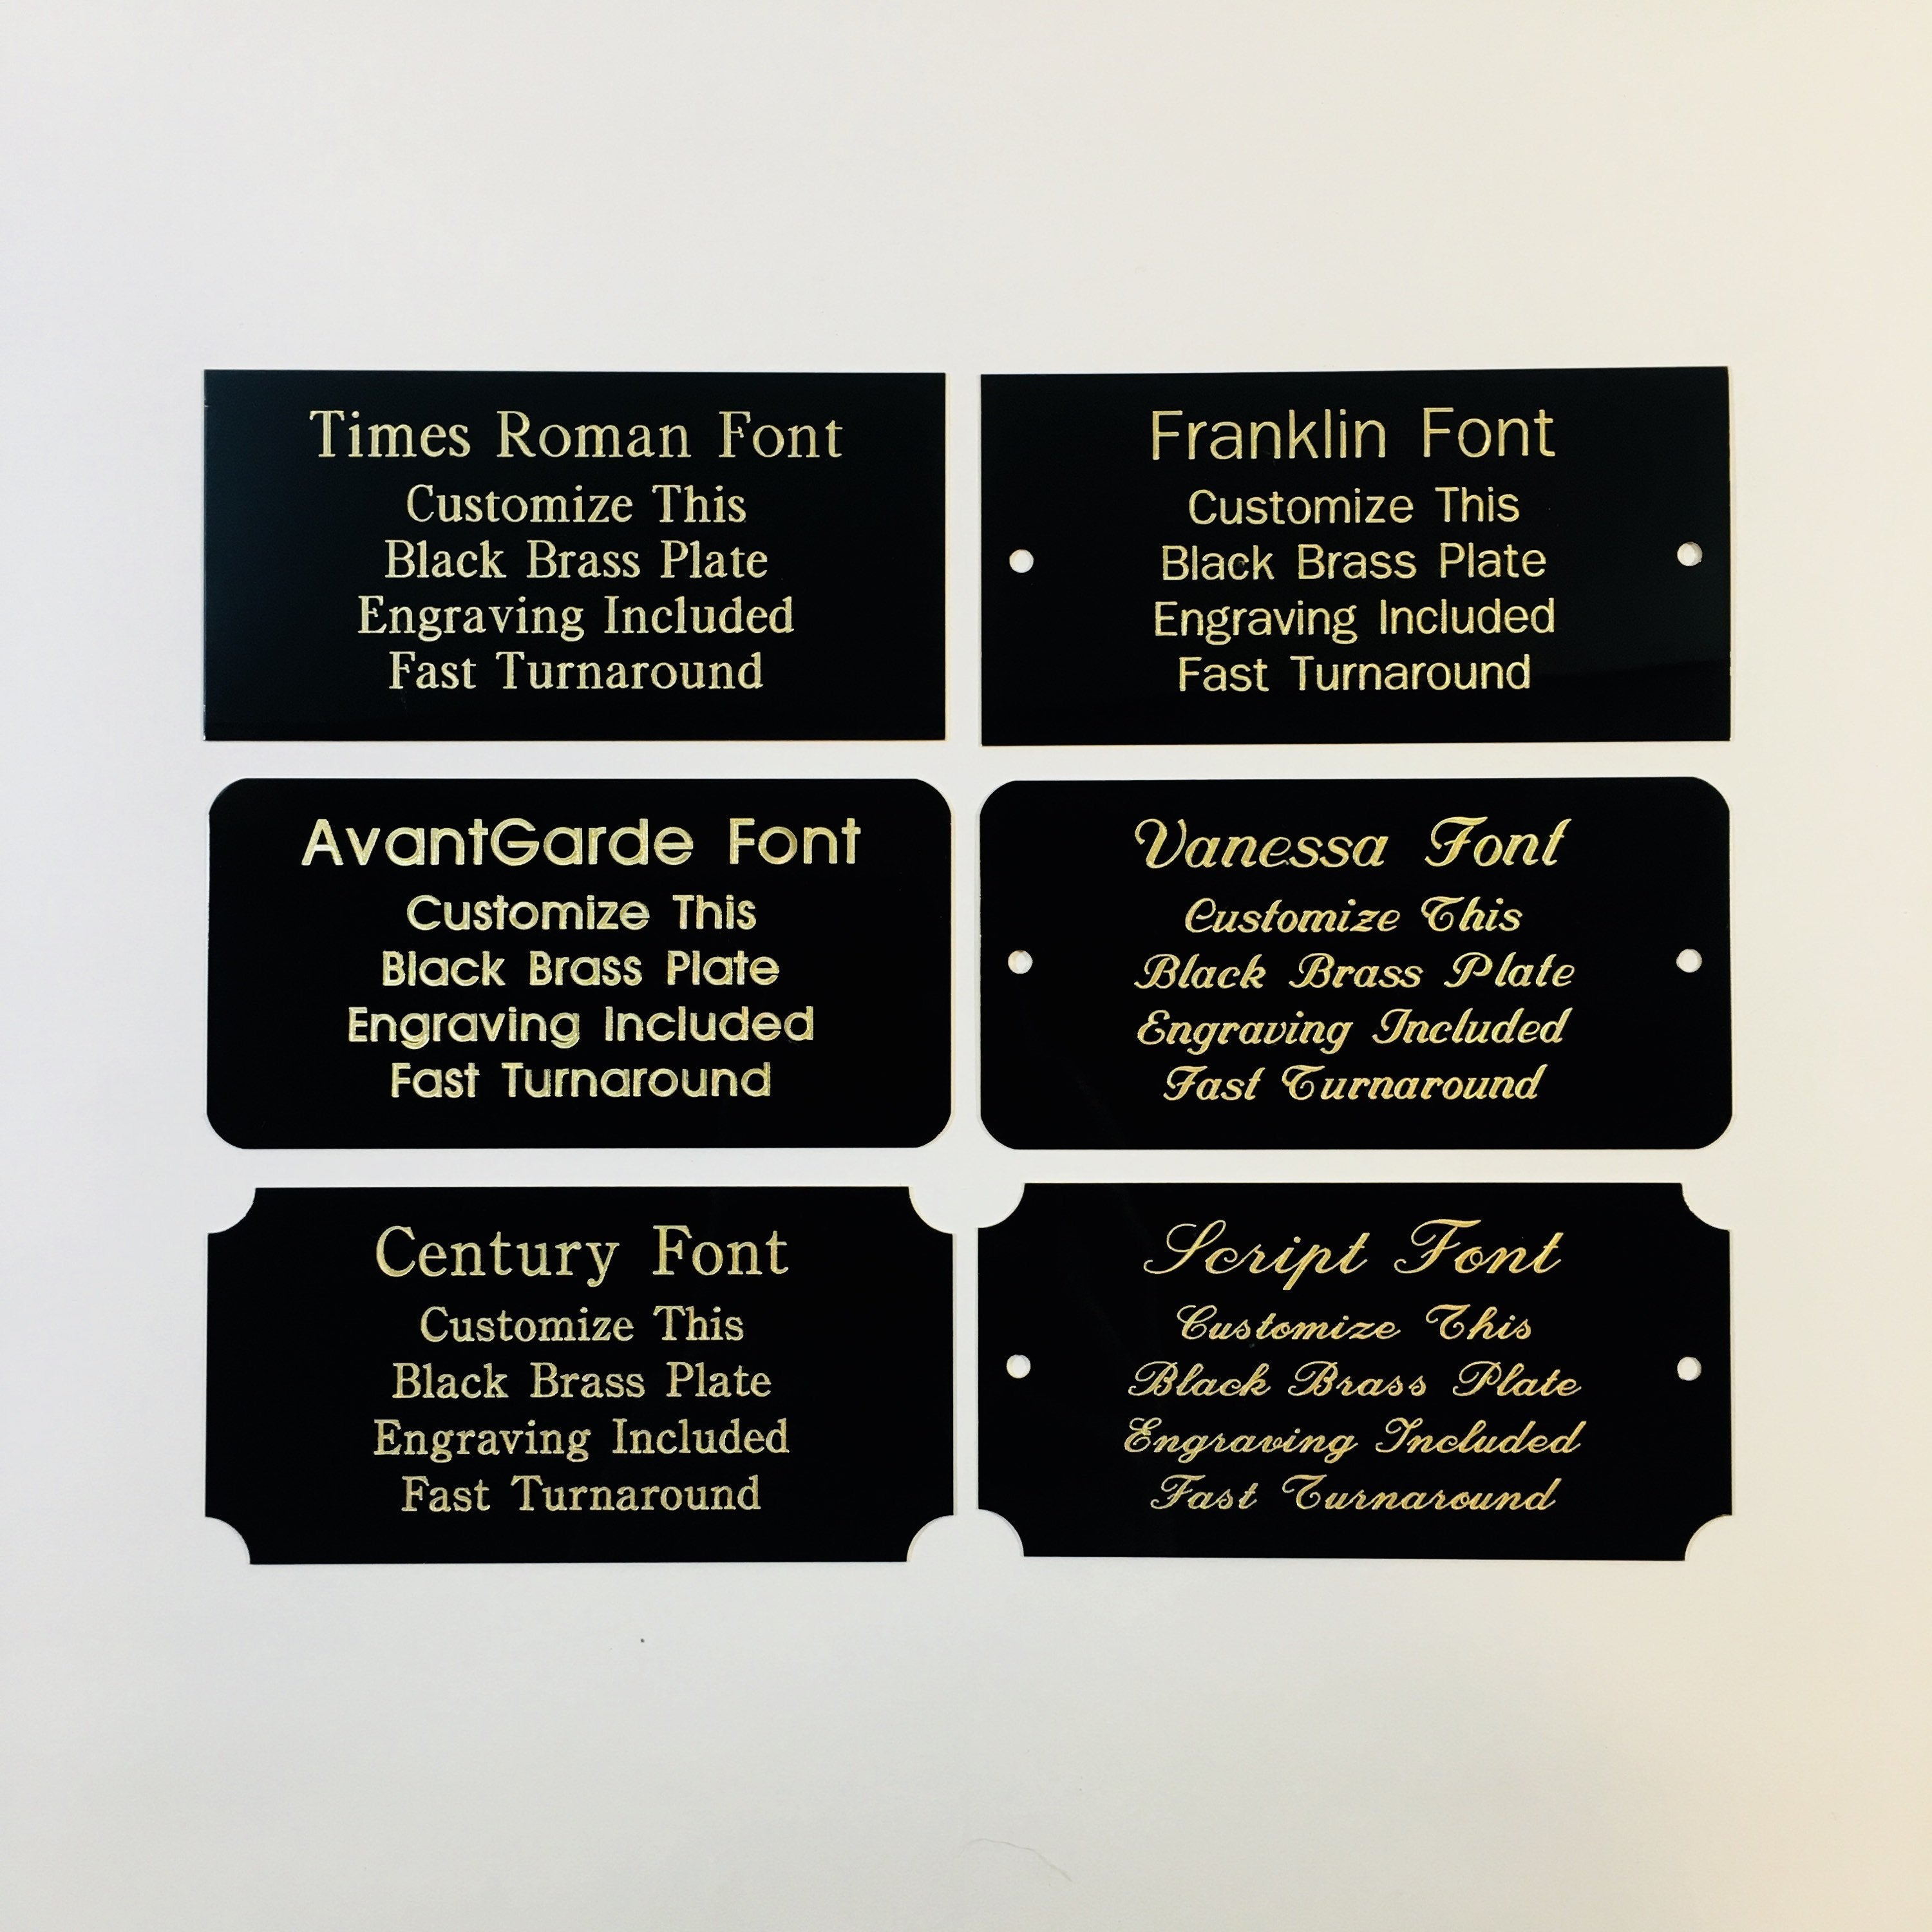 Adhesive-Backed Personalized Customized Sign Plaque Custom Engraved 1x3 Plate